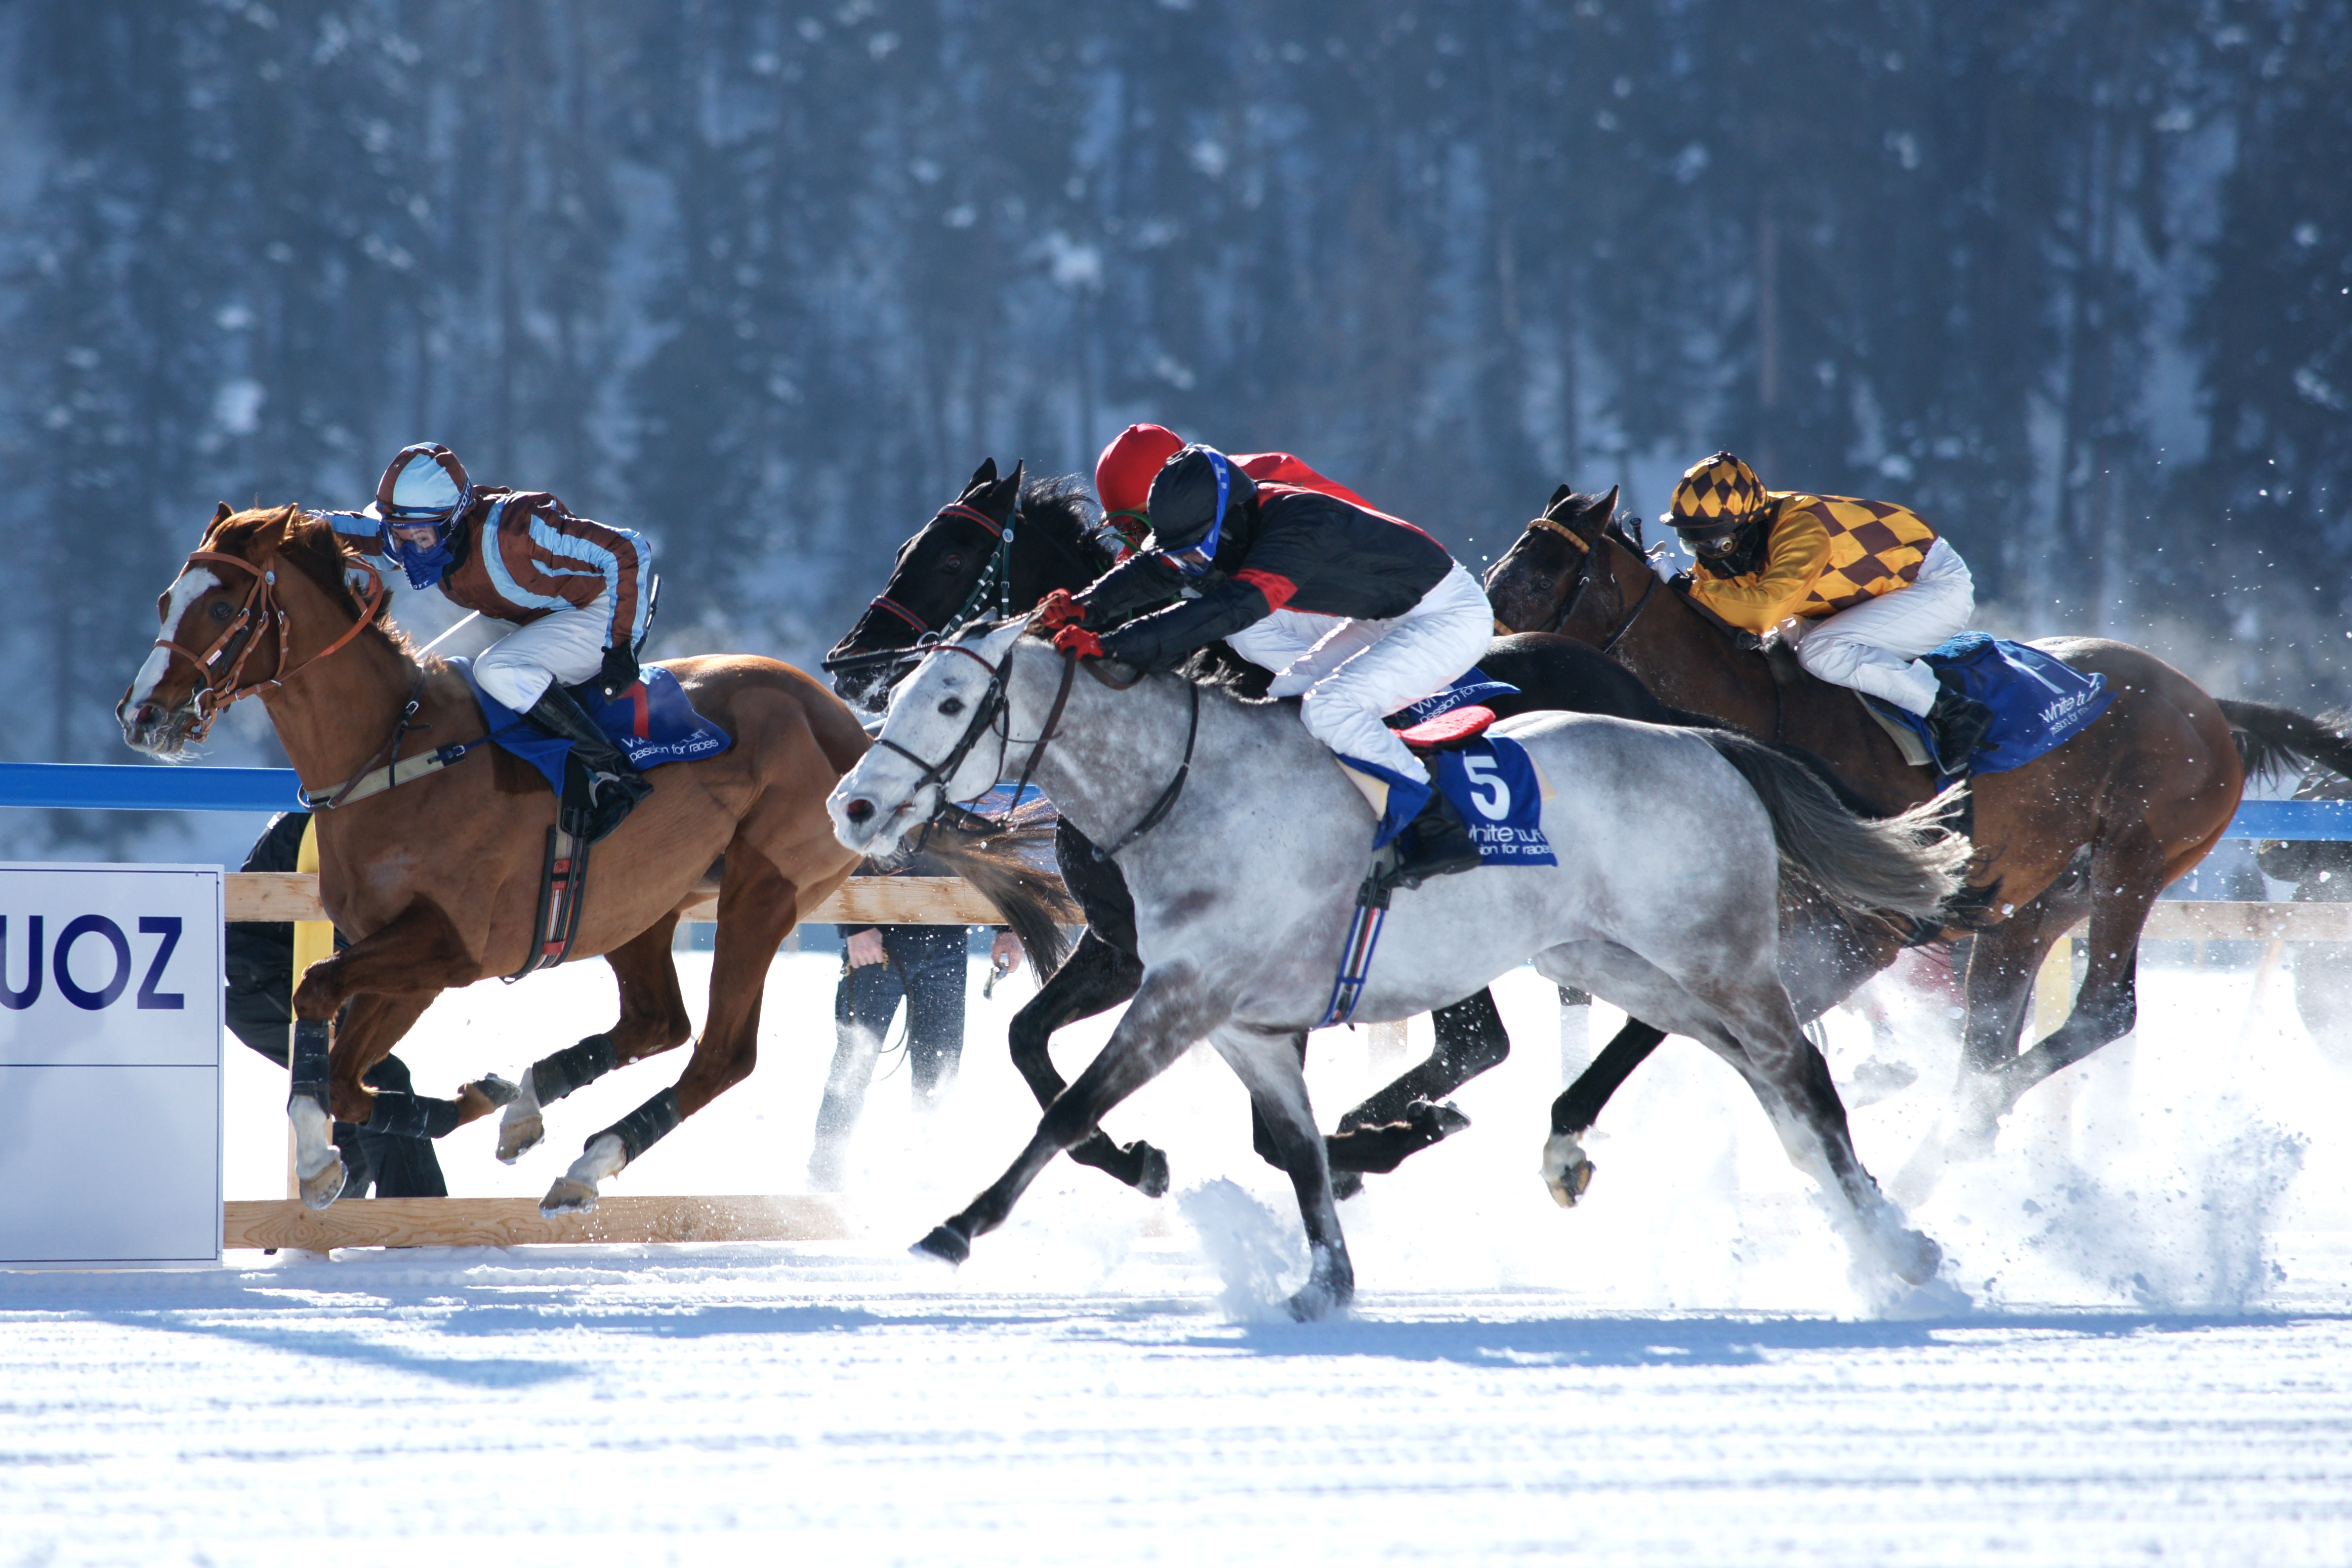 RISK FACTORS FOR INJURY IN SWISS HORSE RACING ::